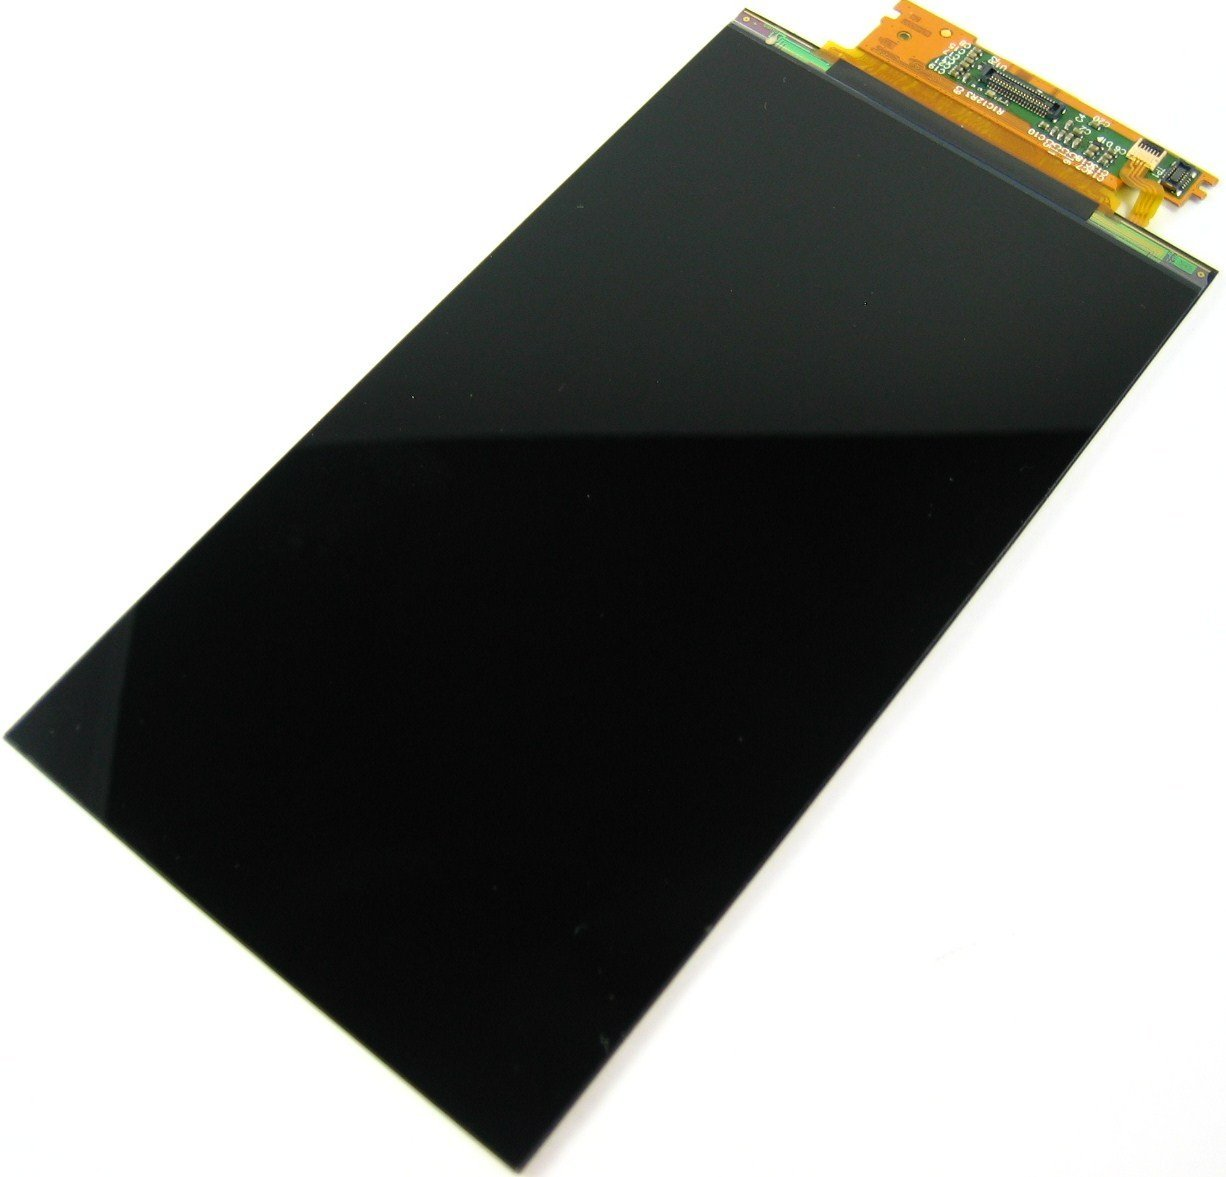 Replacement Ecran LCD Display Screen for Sony Xperia L39h C6902 C6903 Z1 03568-MELDXperiaZ1nn